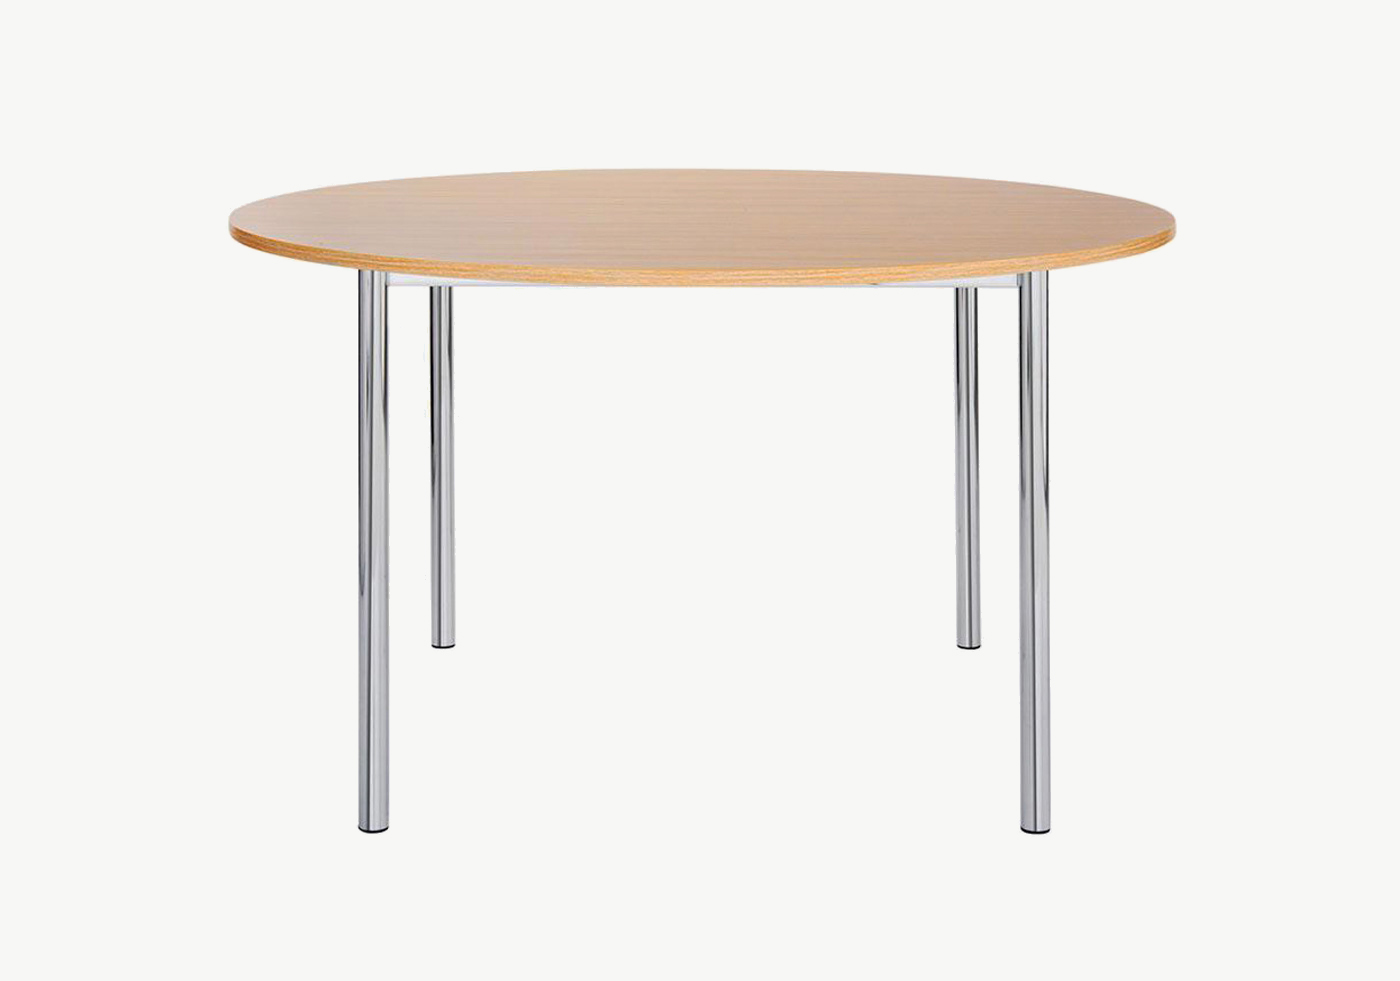 euwens_timeless_tables_september2017_b6w.jpg